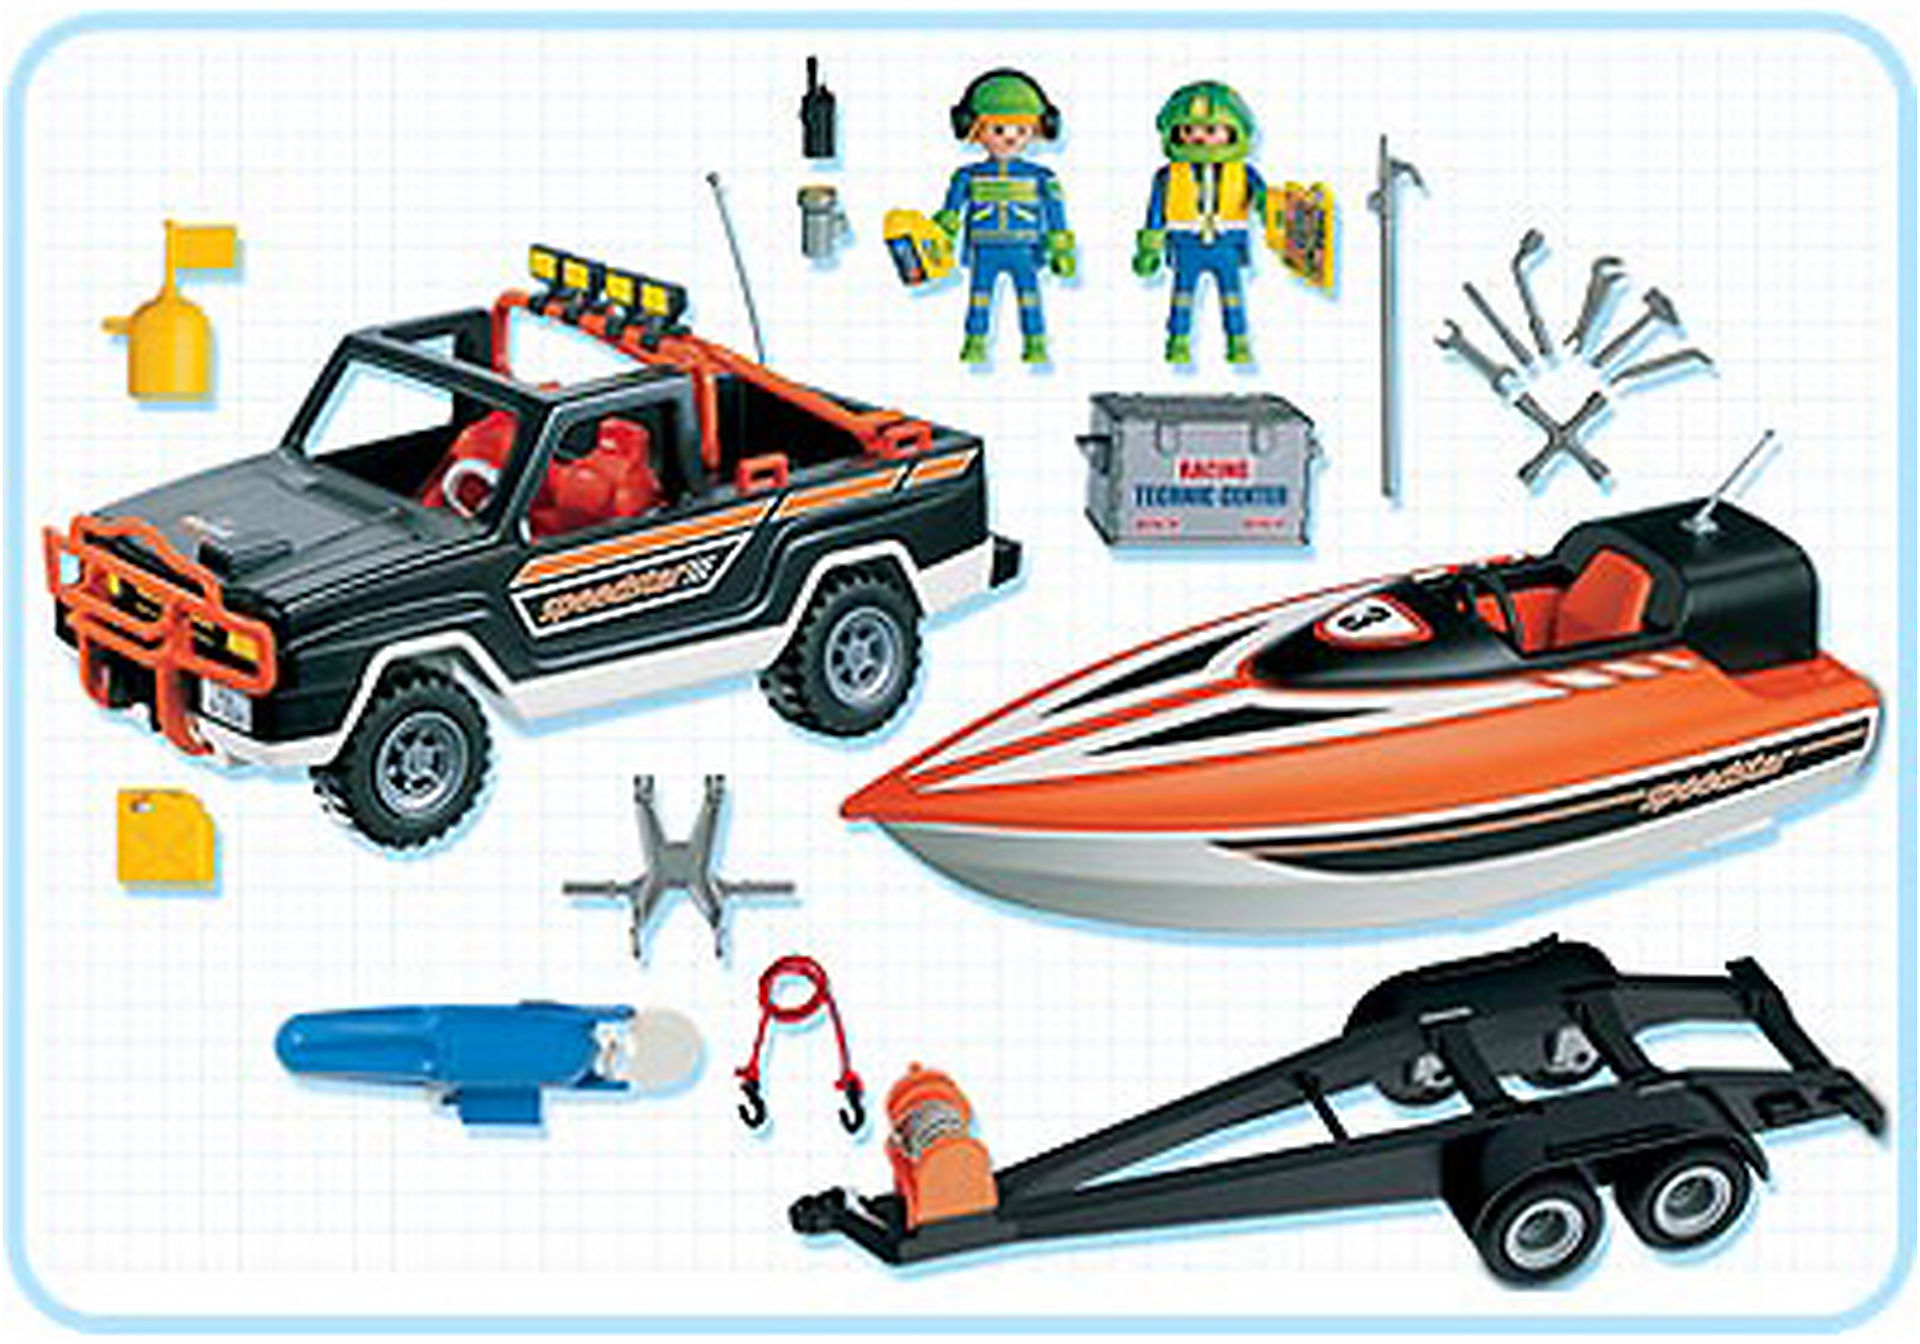 http://media.playmobil.com/i/playmobil/3399-A_product_box_back/Pilote/Bateau de course/4x4